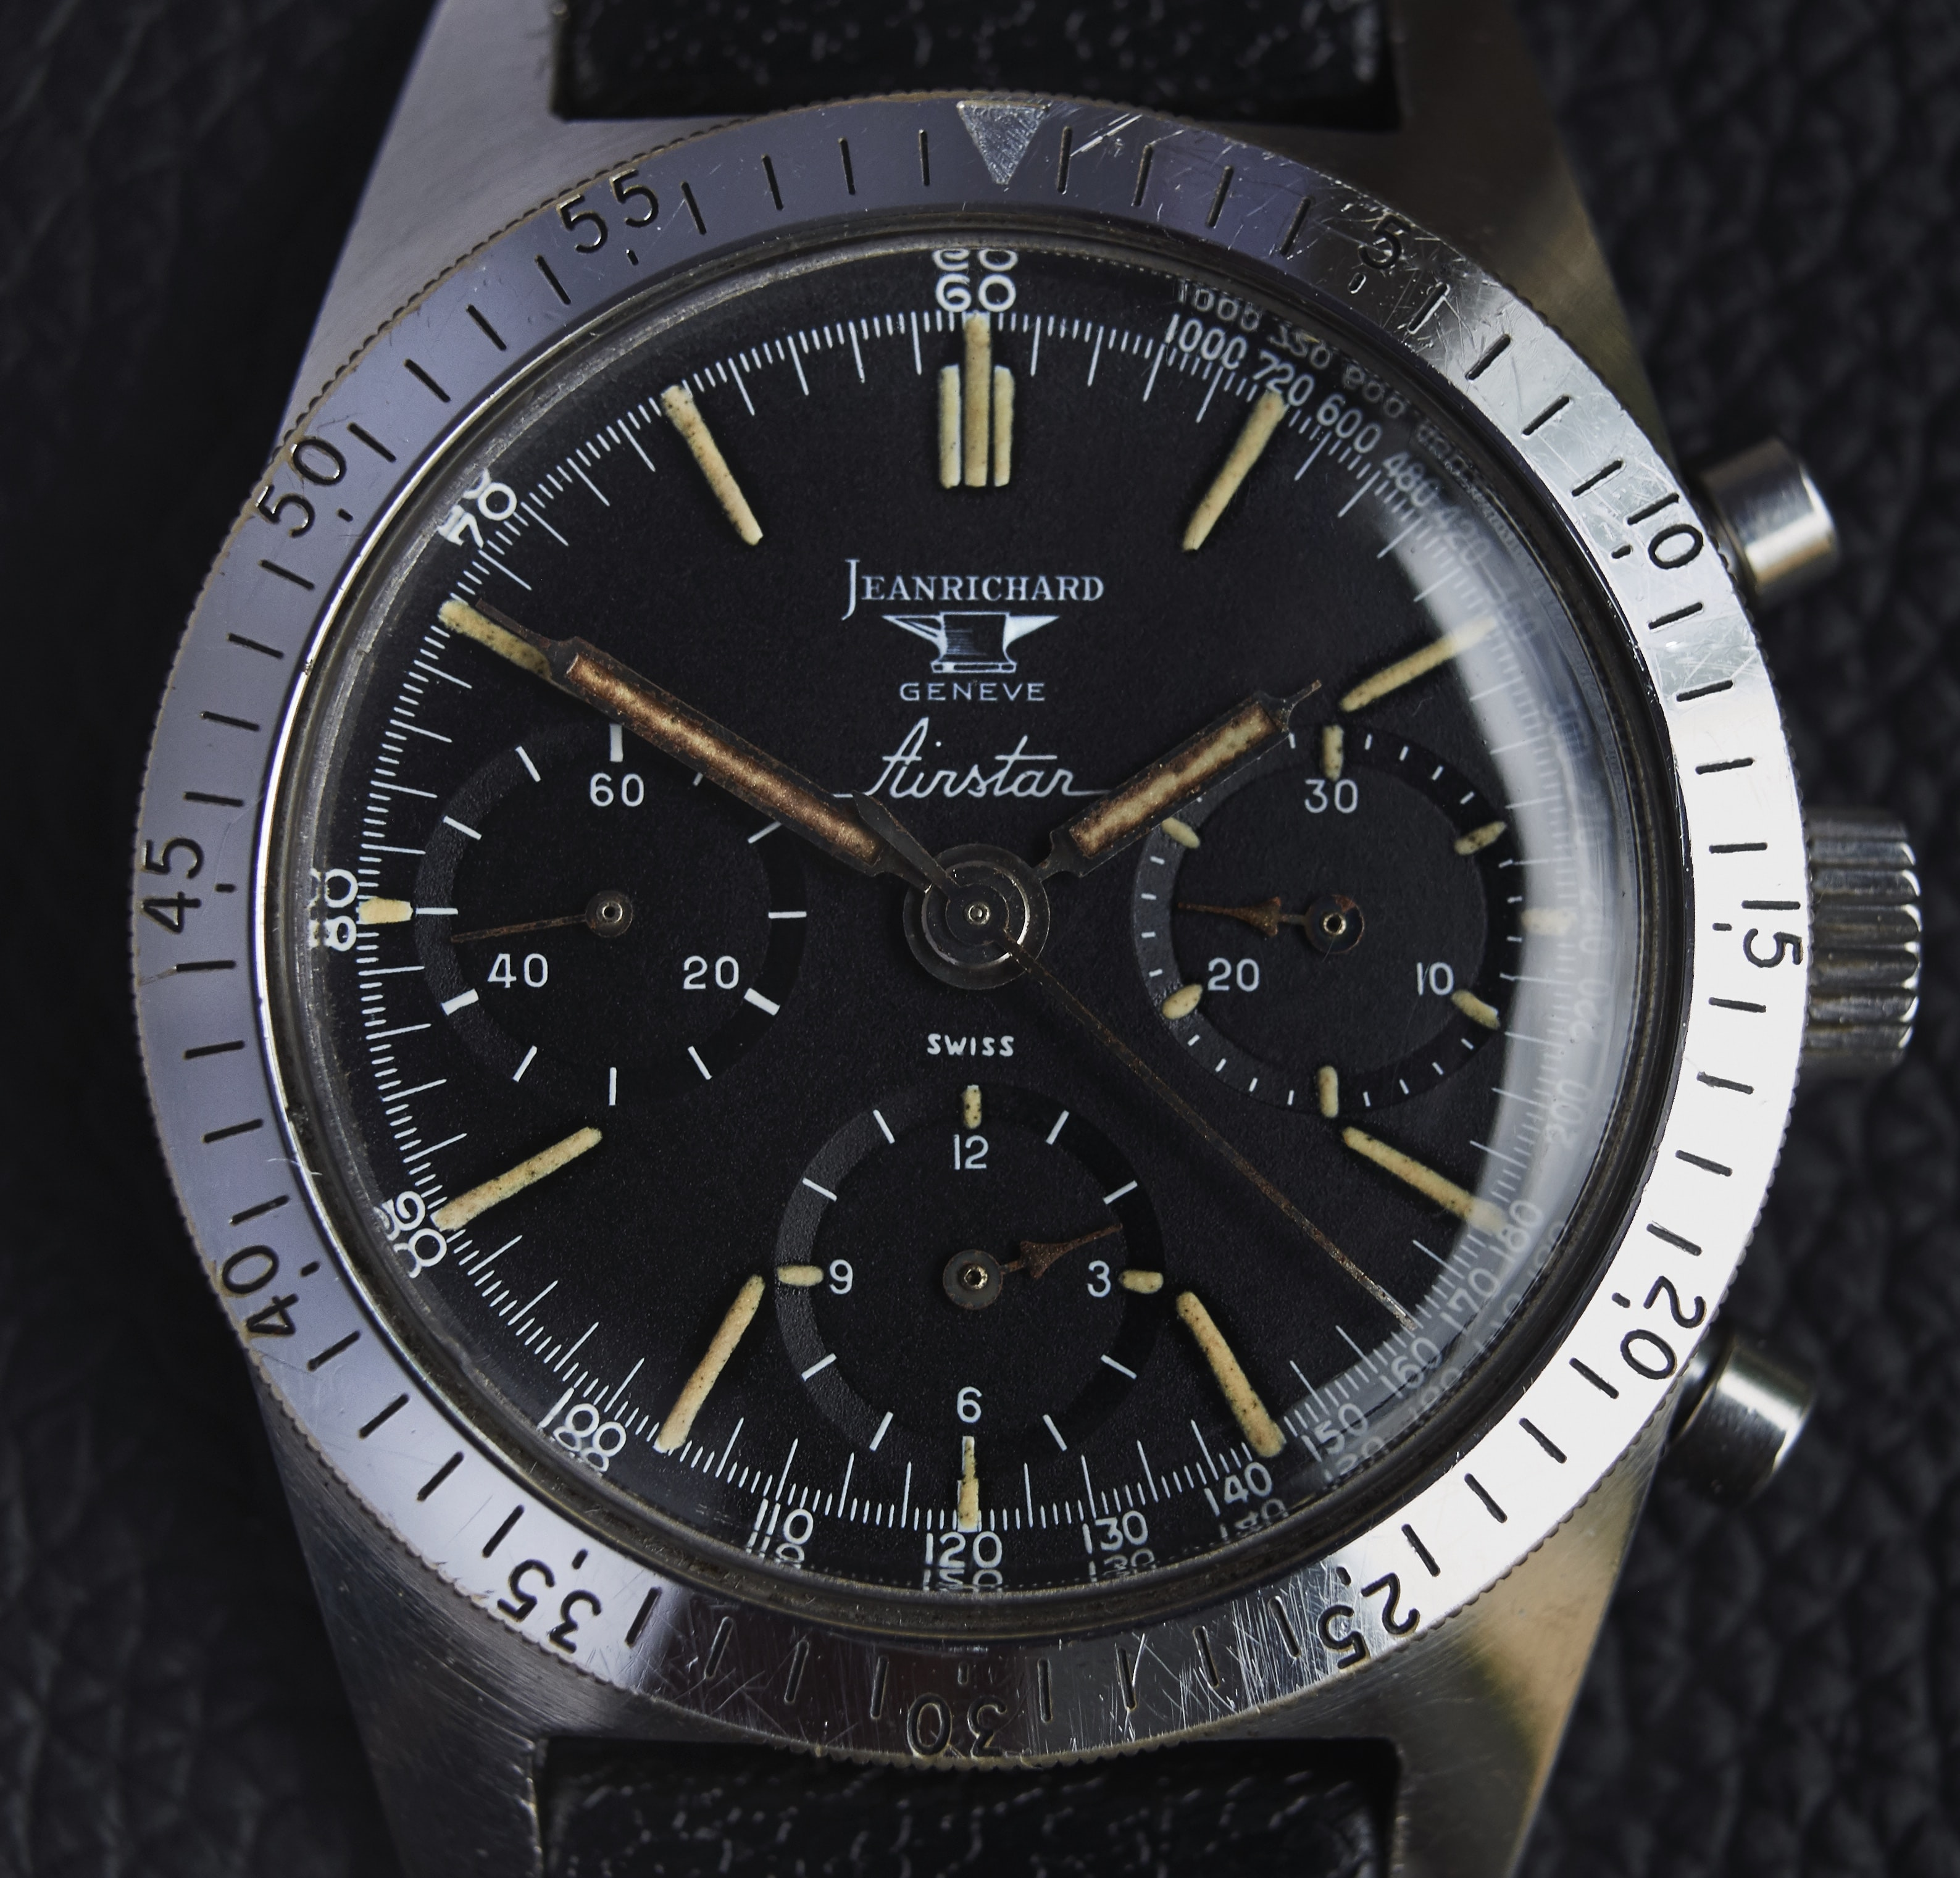 Jean Richard Airstar  Bring a Loupe: A Transitional Jean Richard Airstar, A 'Big Bubbleback' Rolex Ref. 6106, A Military Heuer Carrera Ref. 7753, And More Benutzerdefinierter Name461